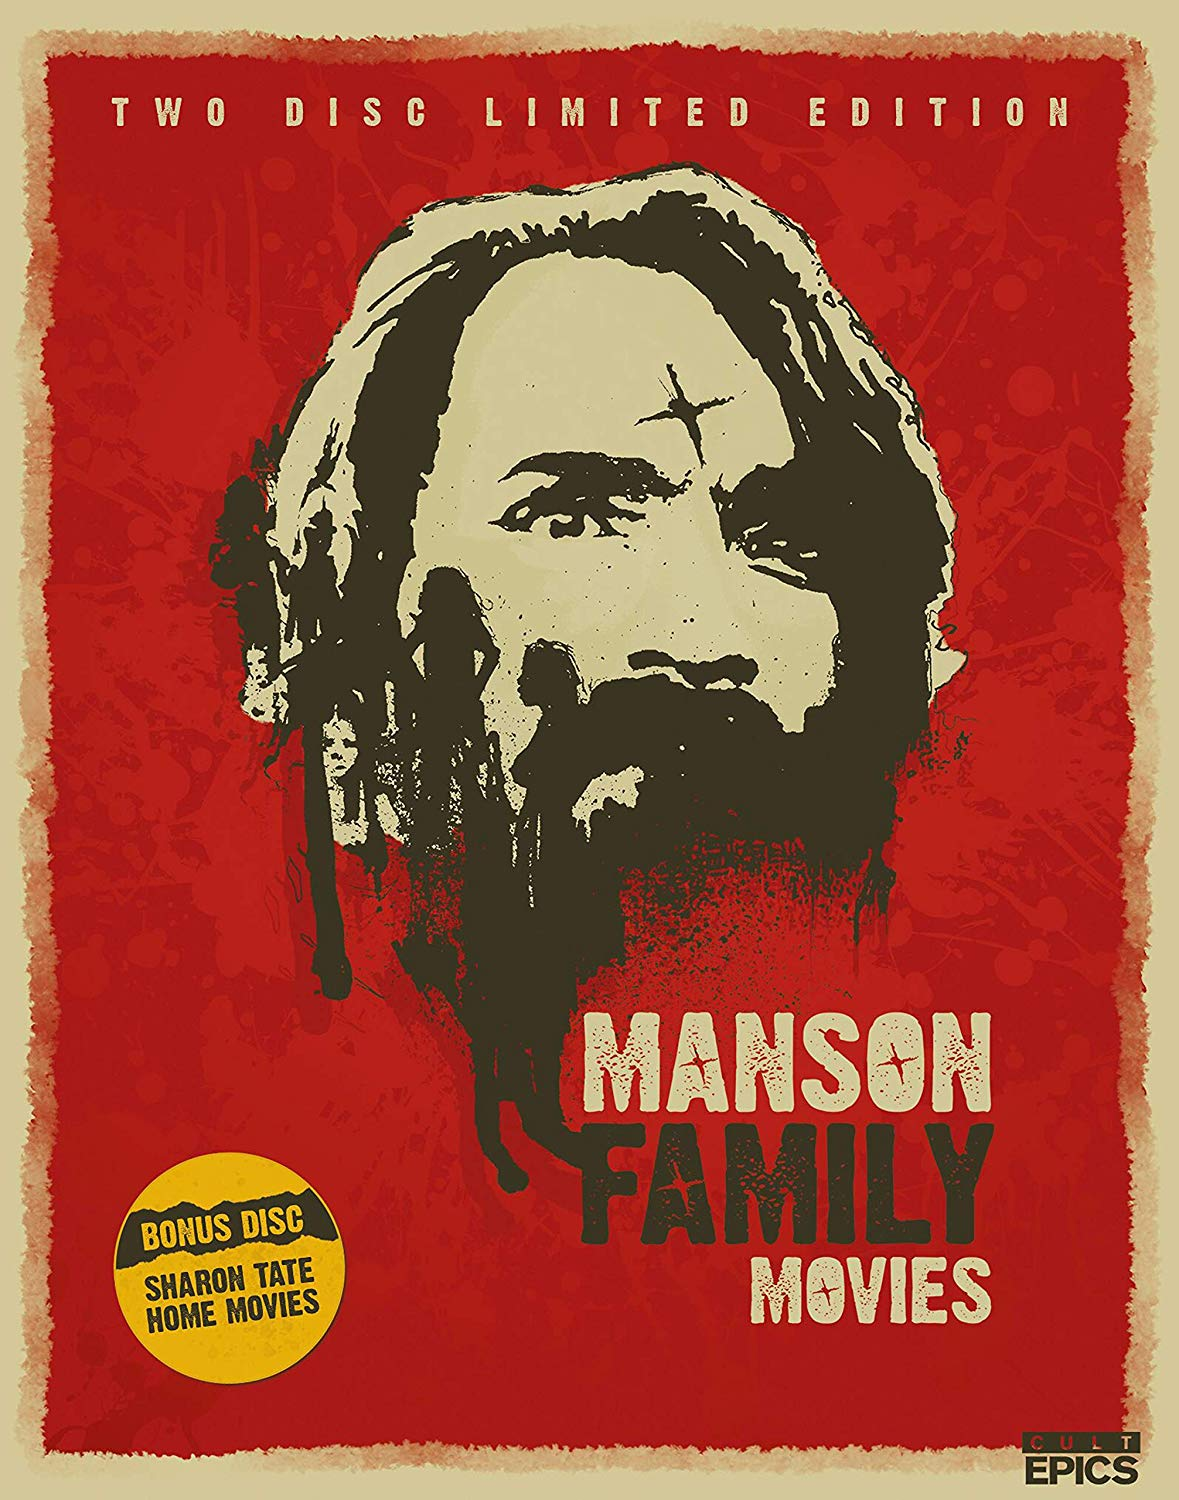 Manson Family Movies - Daily Dead